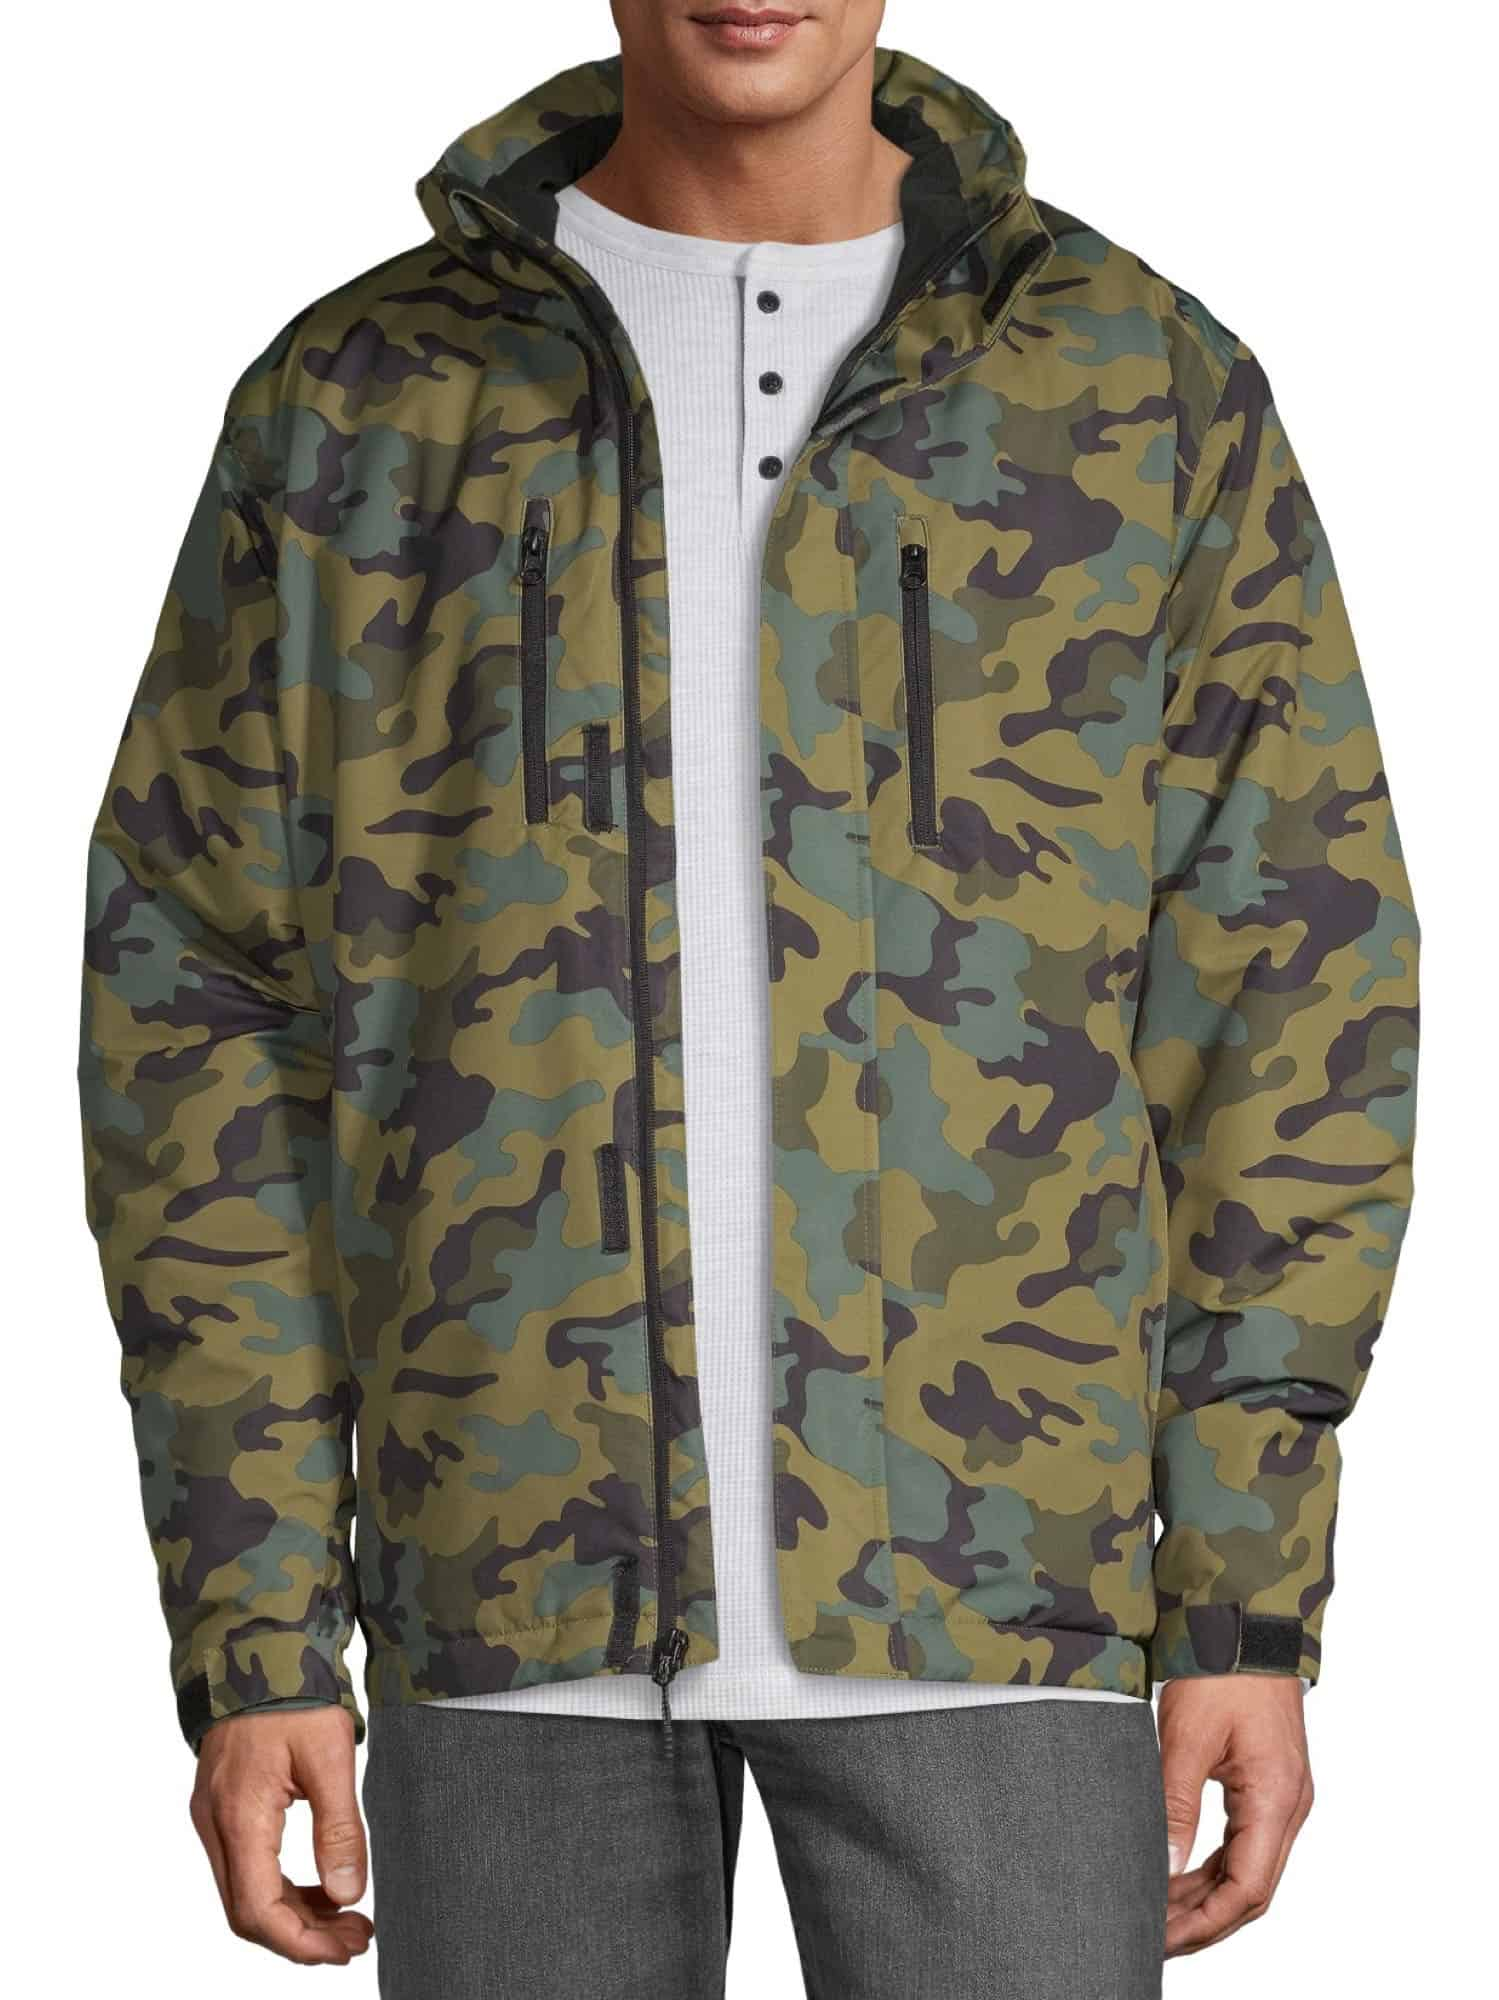 Iceburg Men's Jacket is a great gift for teenager boys